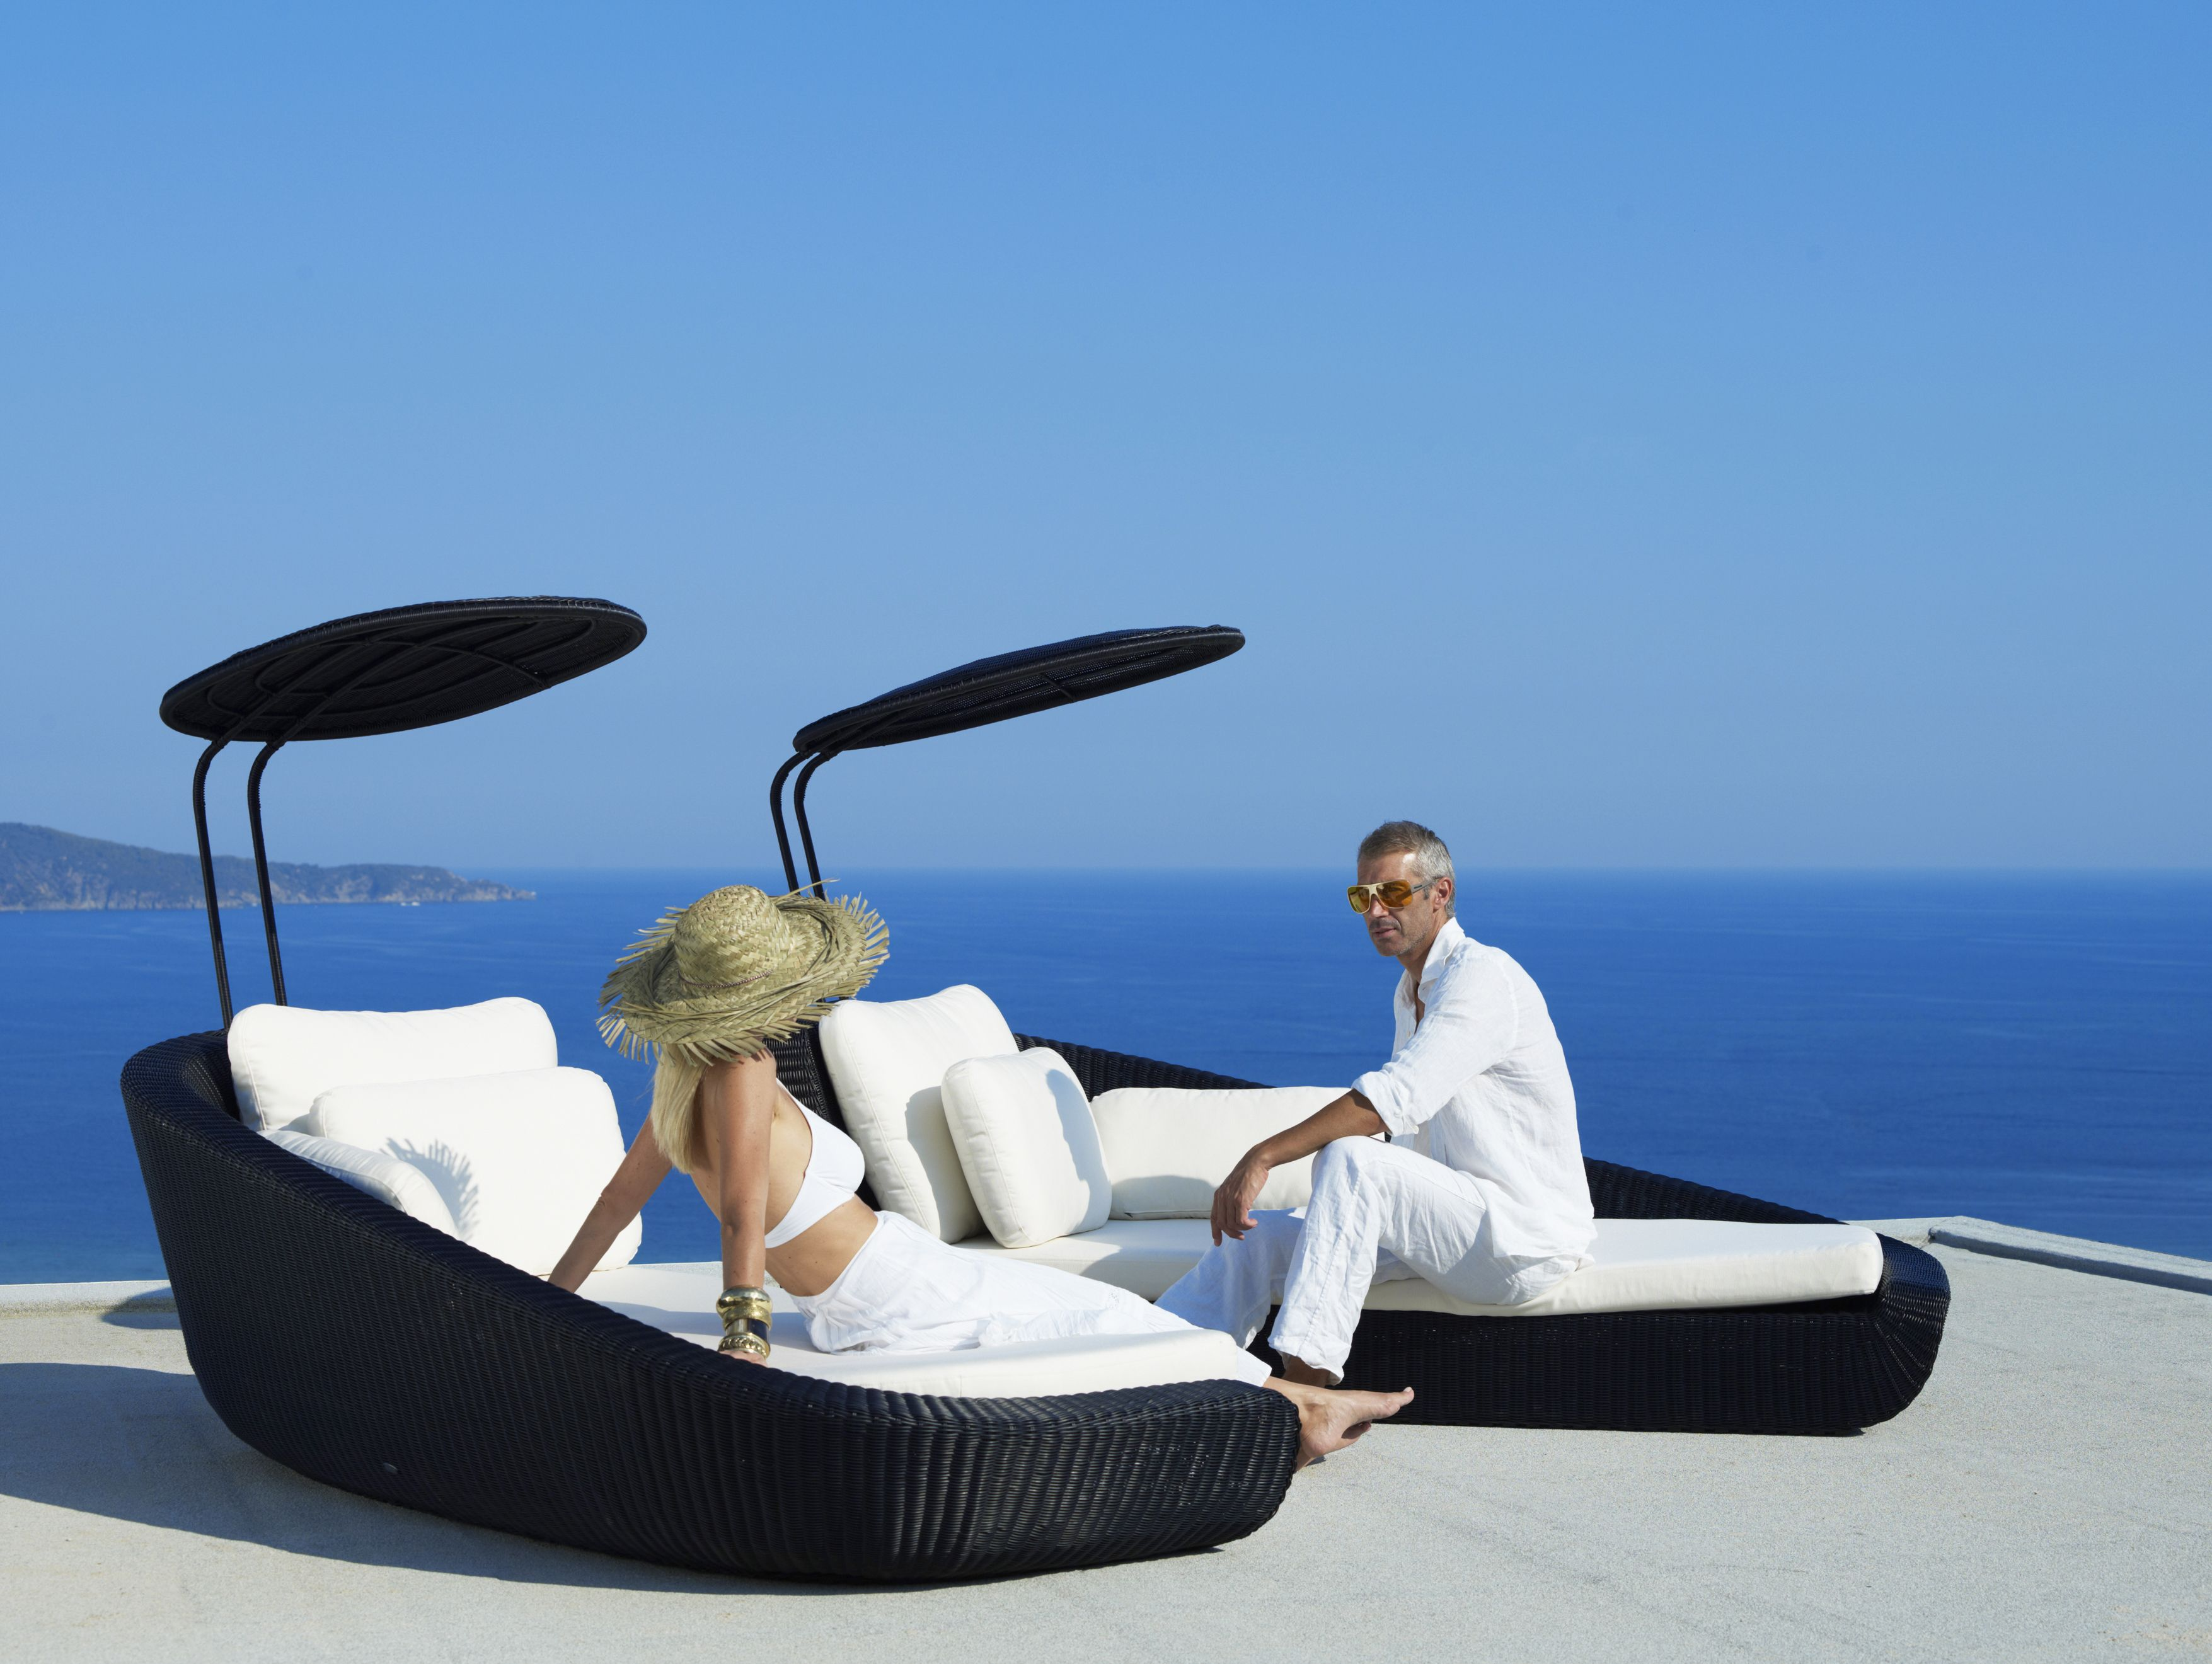 Beds on pinterest gardens floating bed and wicker patio furniture - Couture Outdoor Features Cane Line European Luxury Outdoor Furniture Since 2008 Wicker Furnituregarden